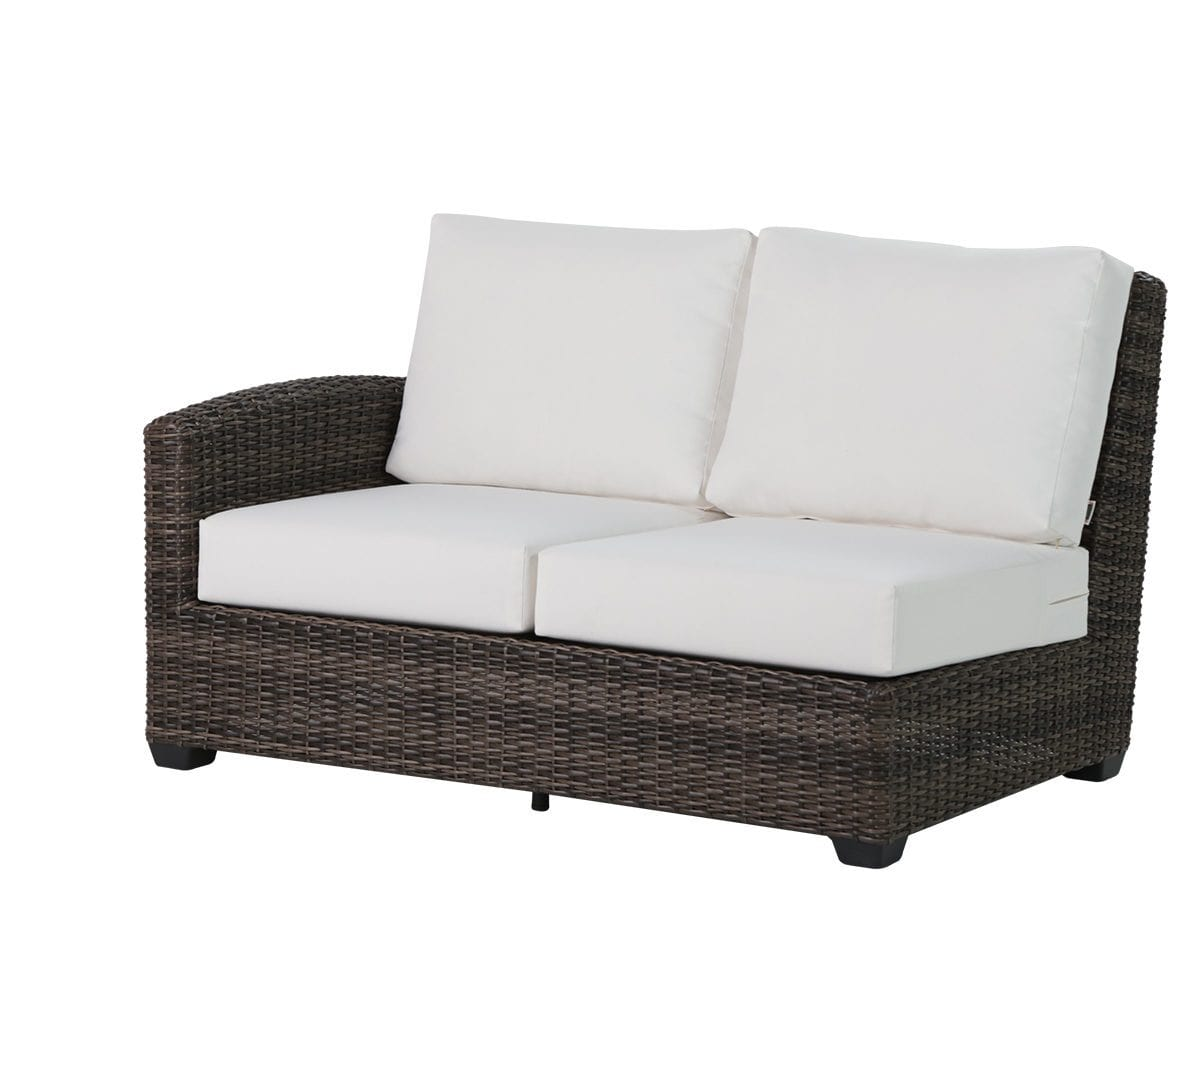 Ratana wicker Coral Gables 2 Seat Left